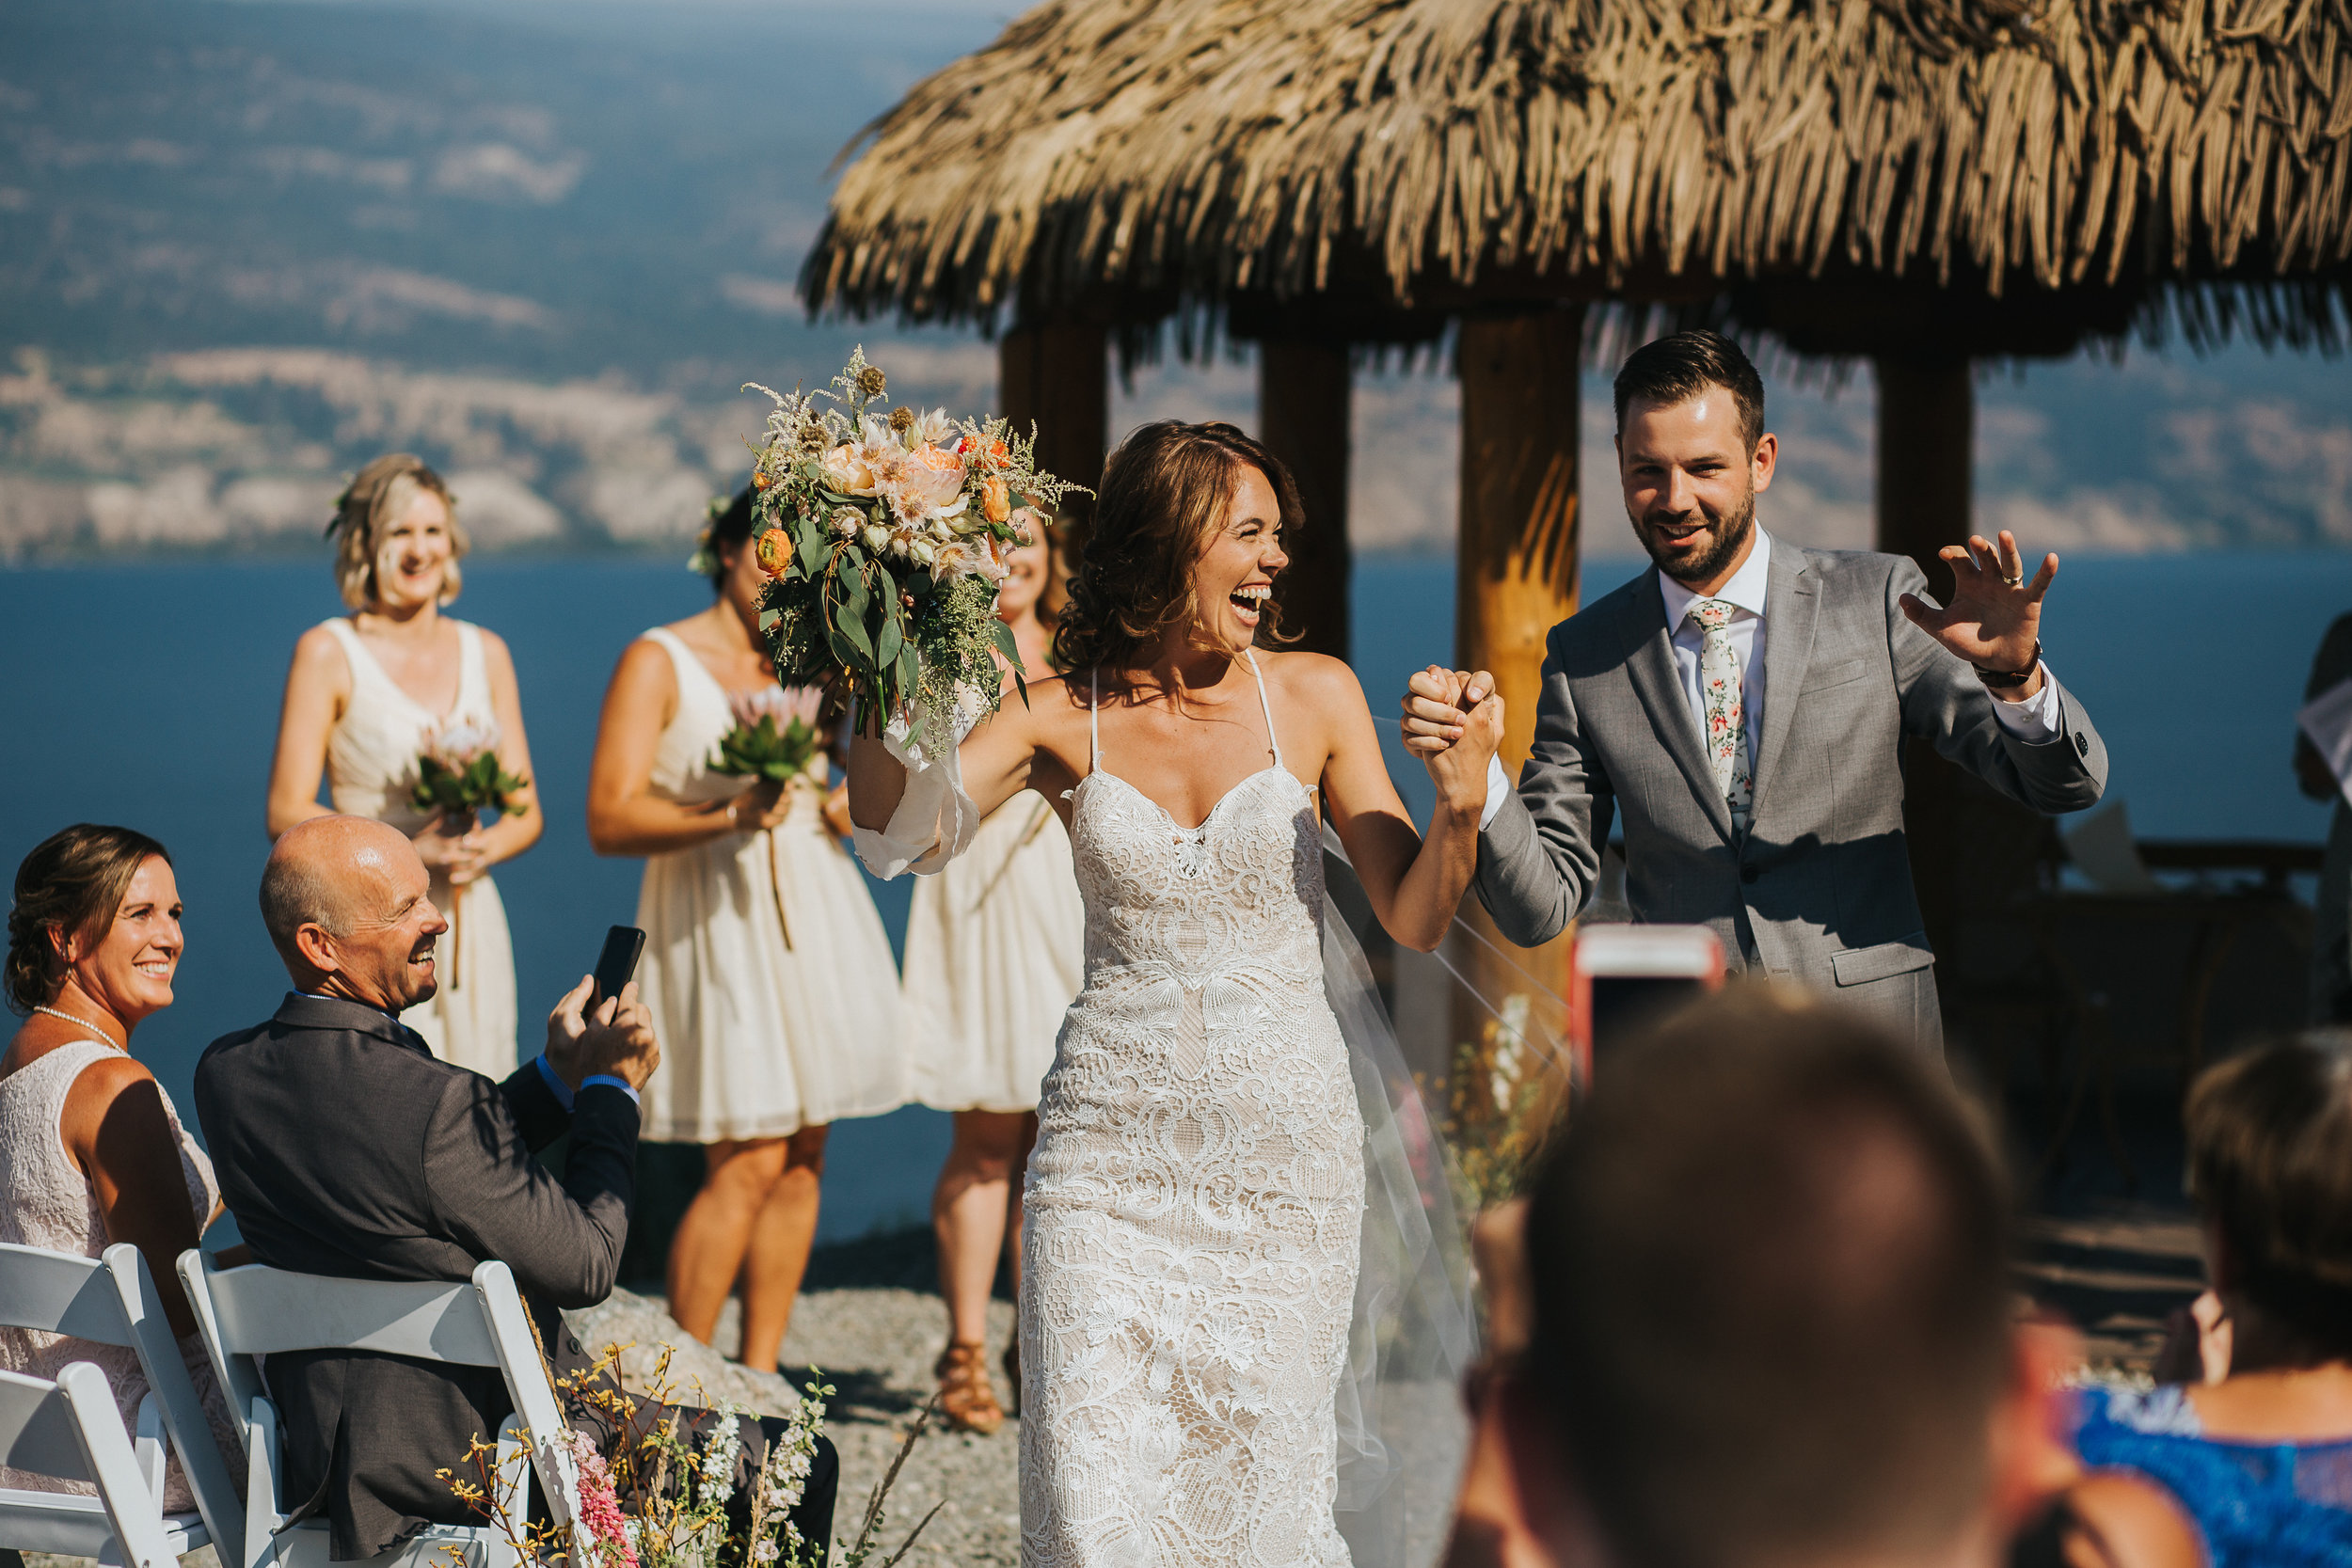 Penticton Wedding Ceremony.jpg